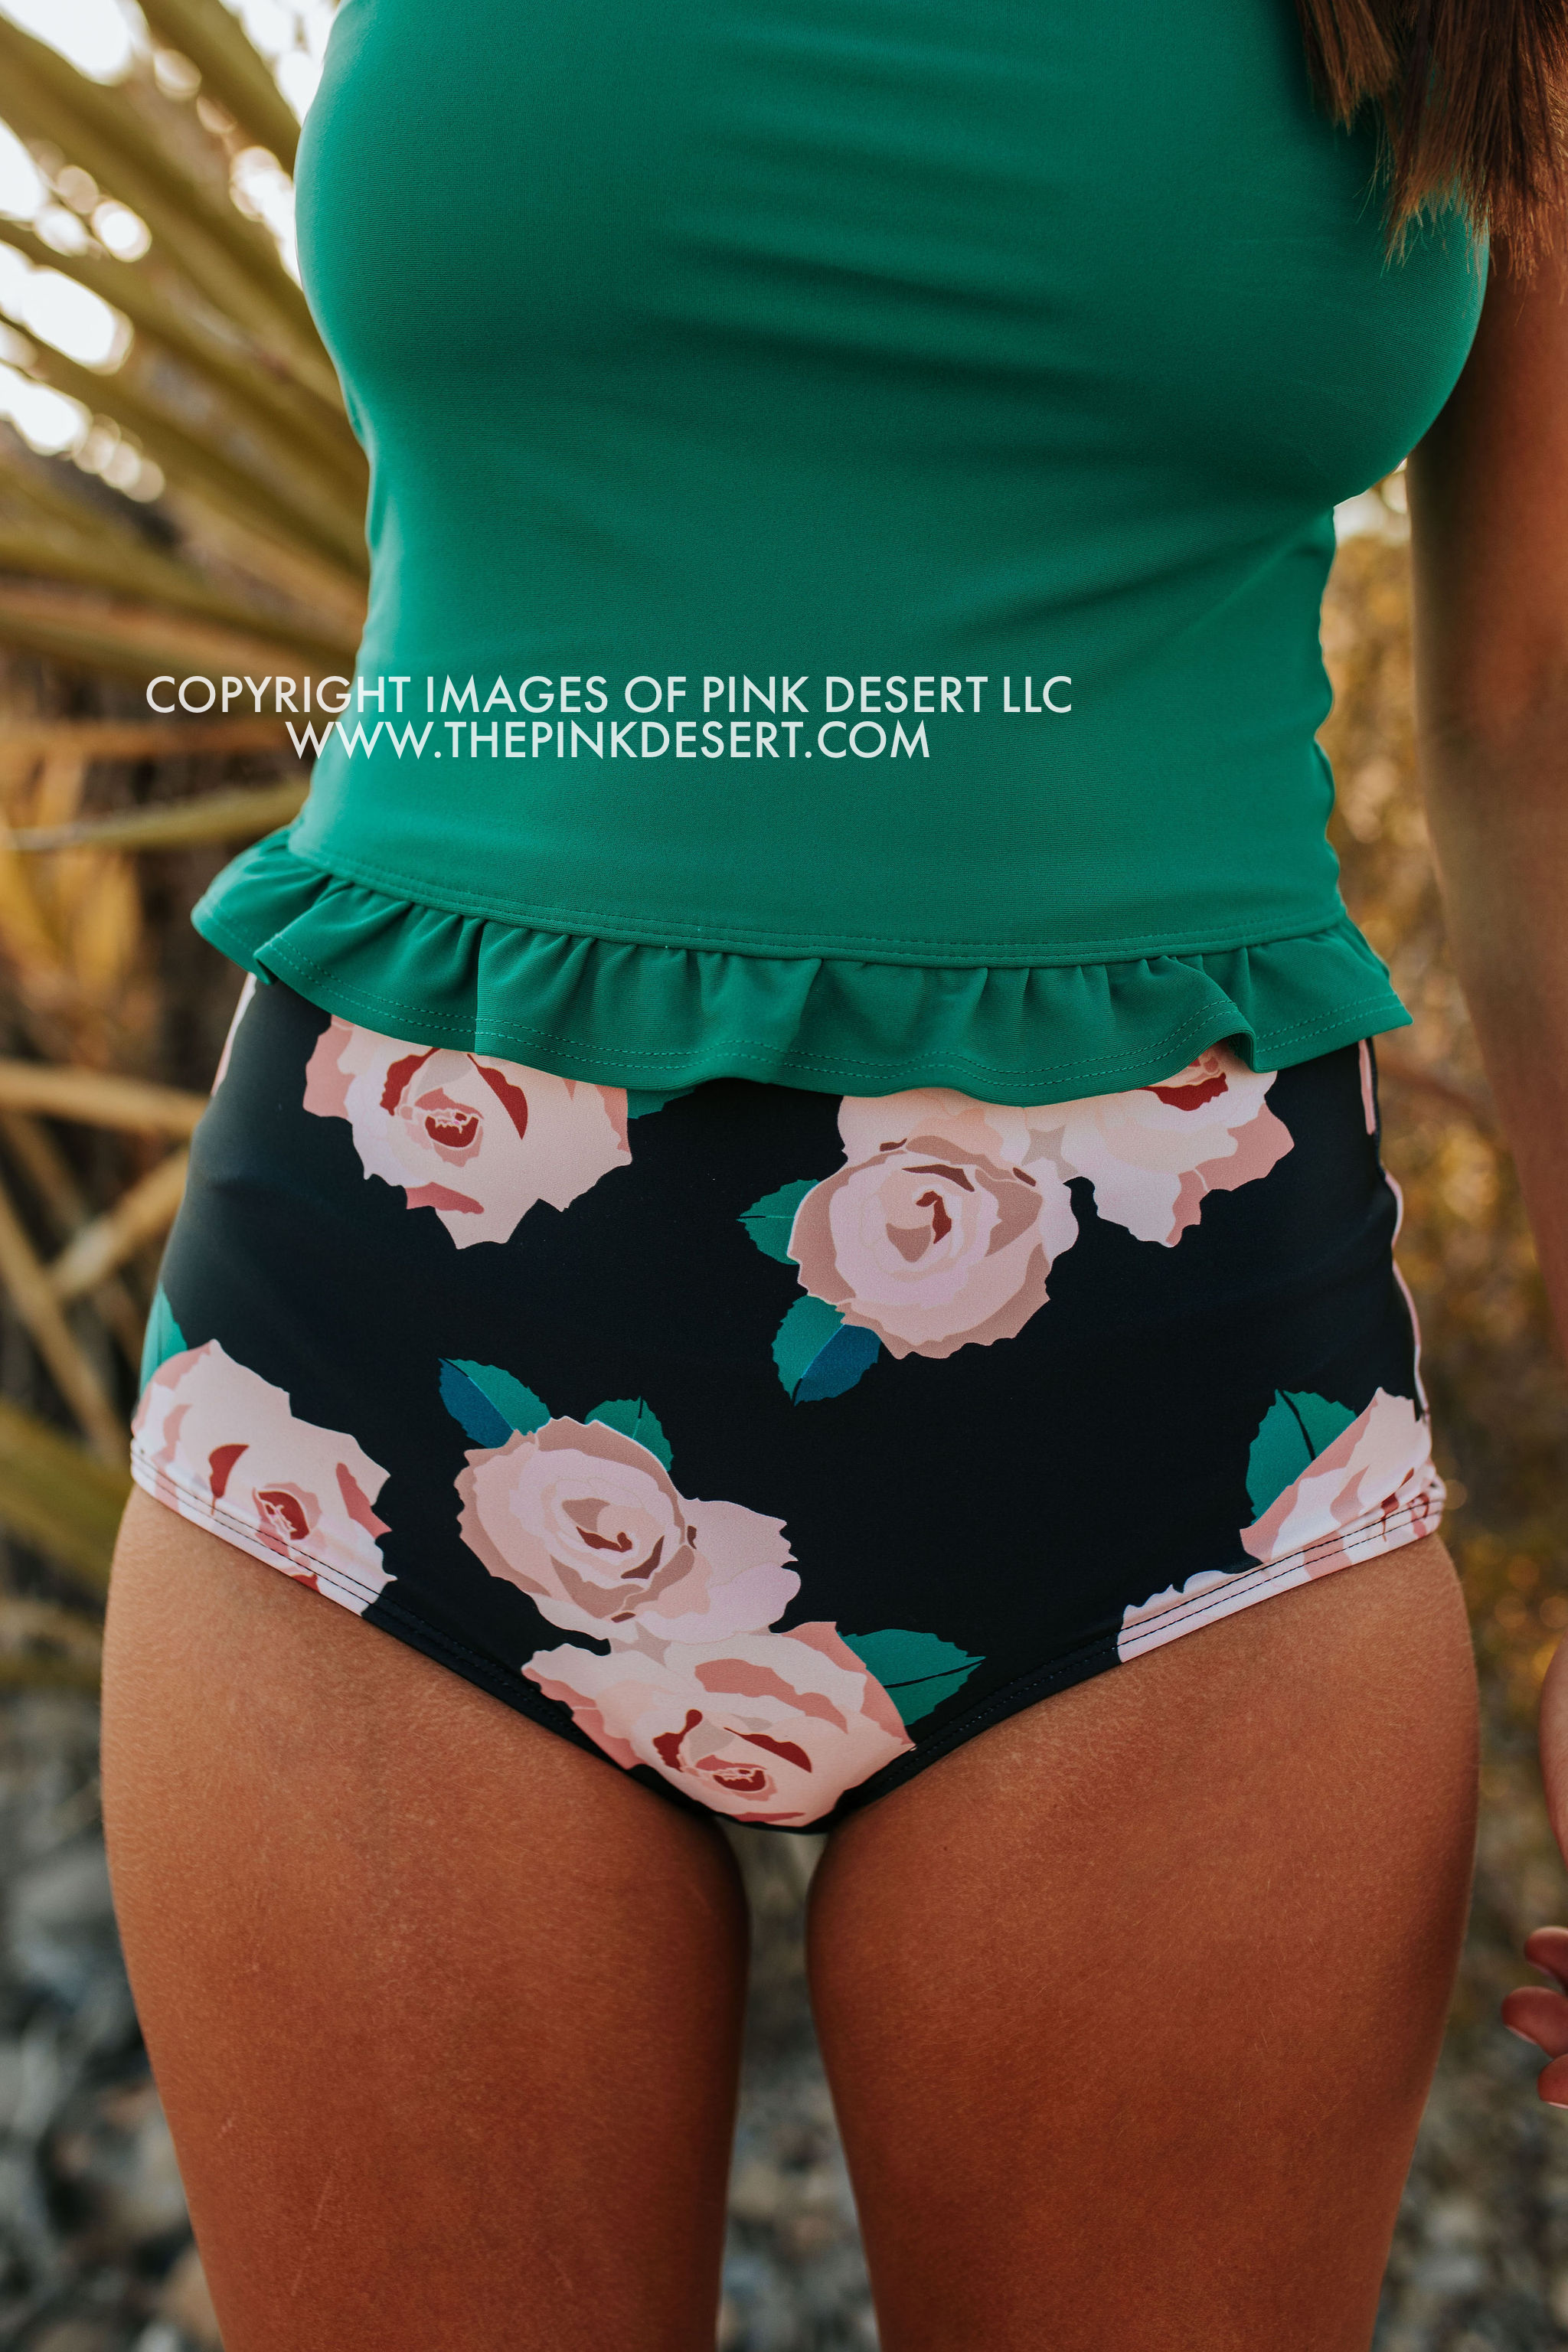 THE DREAM ROSE HIGH WAIST SWIM BOTTOM BY PINK DESERT